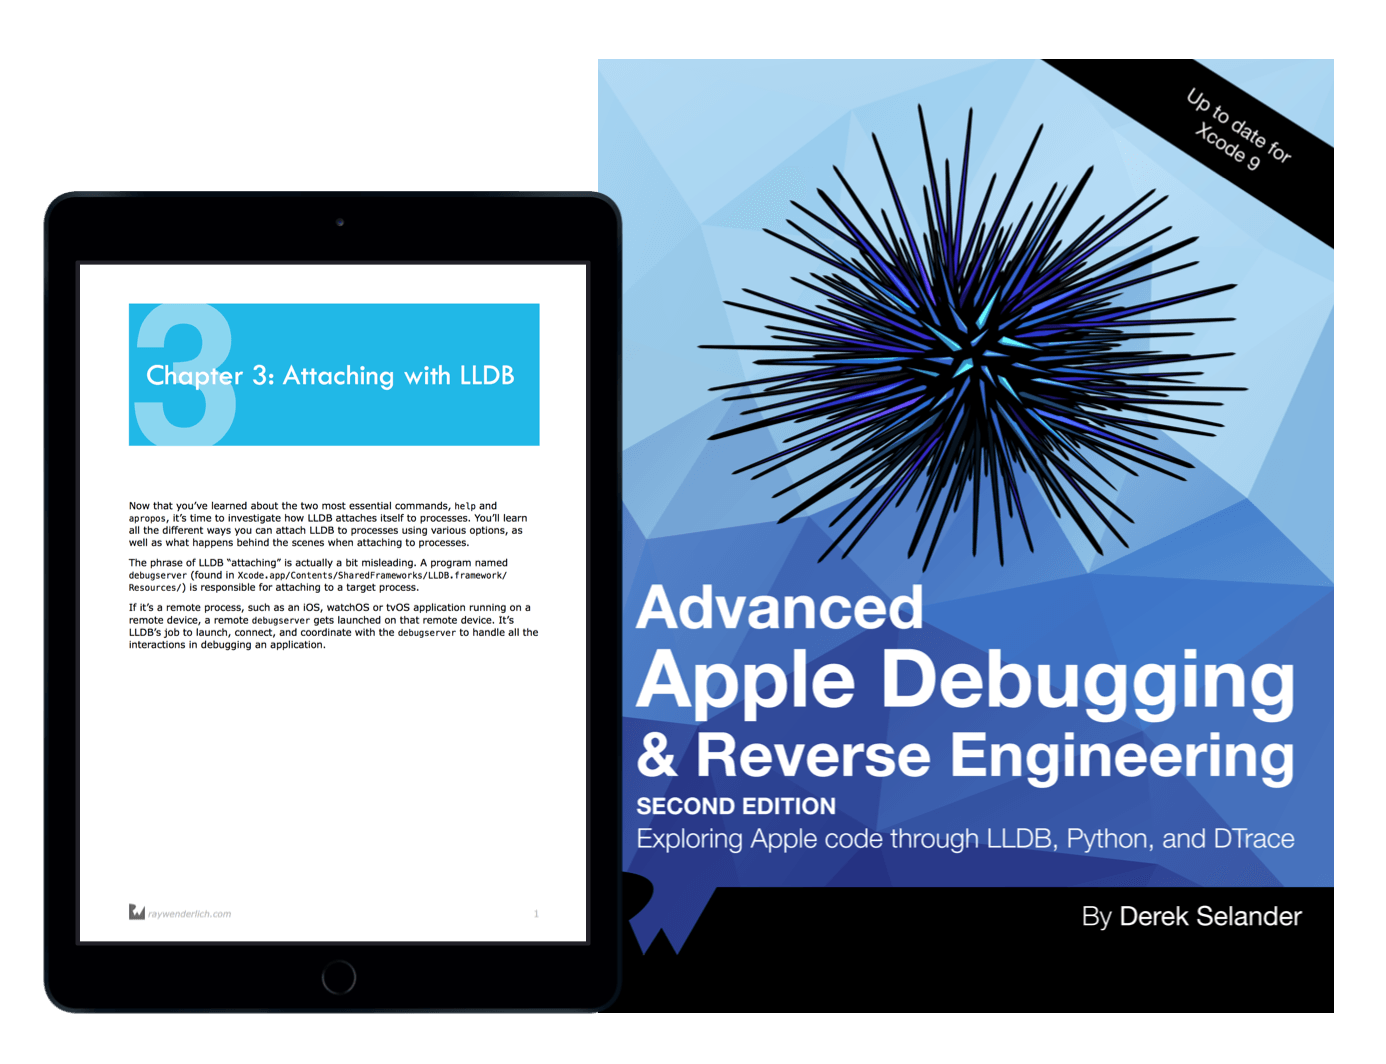 Ray wenderlich store advanced apple debugging reverse advanced apple debugging and reverse engineering book cover falaconquin